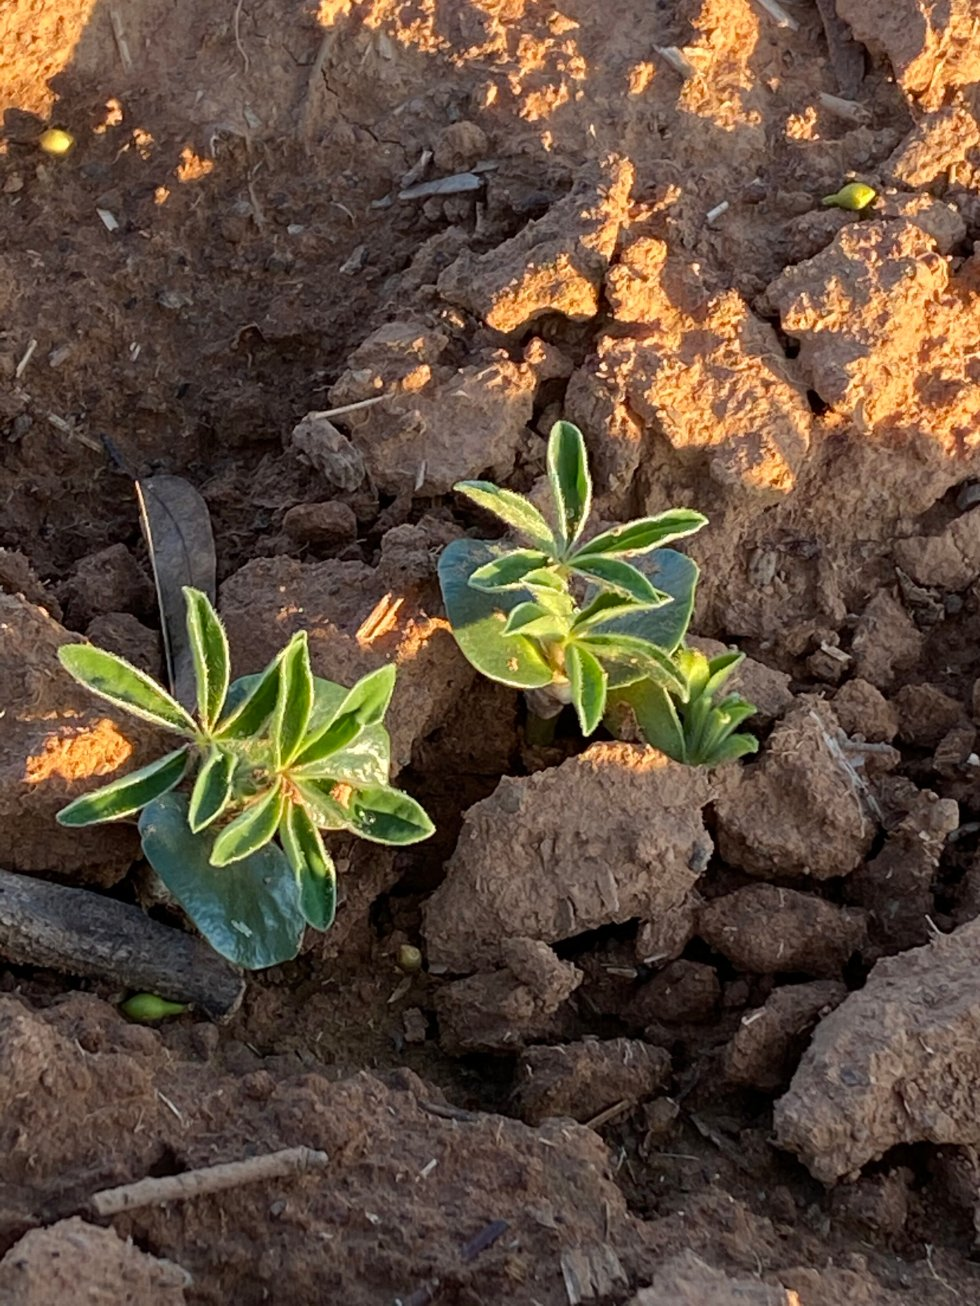 7 June 2020 - Lupins ready for their close up!